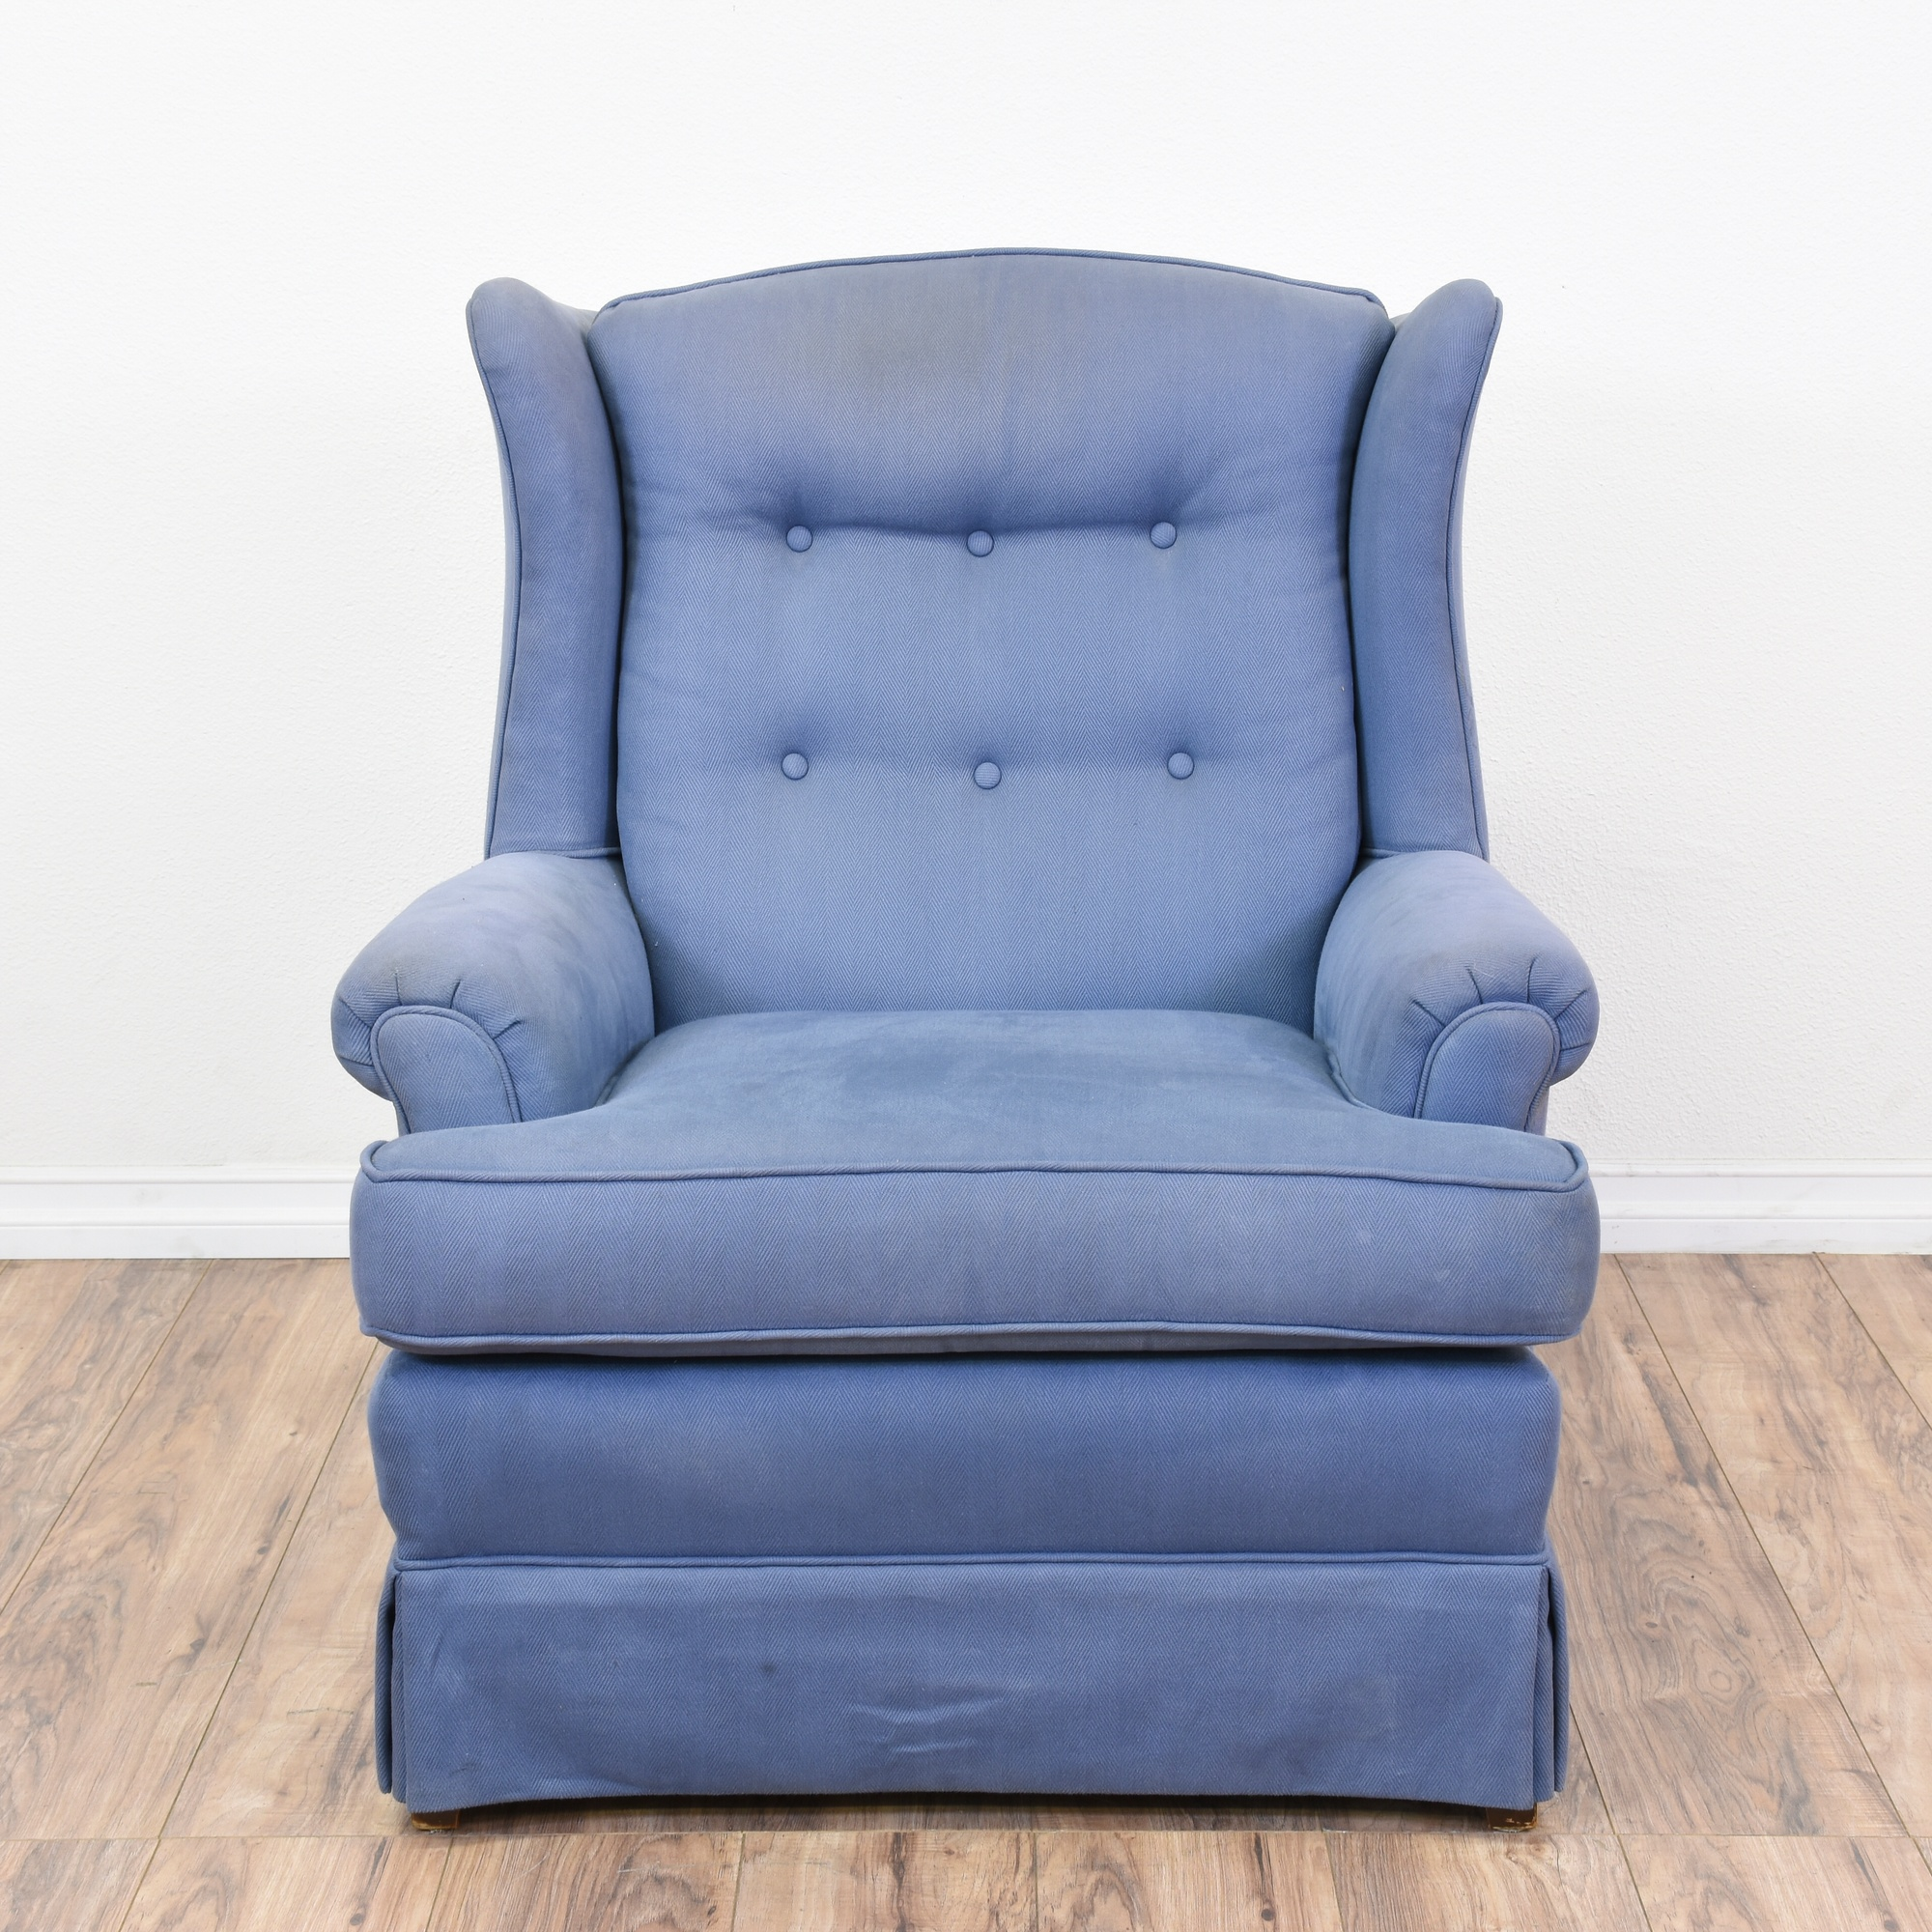 Traditional Blue Wingback Tufted Armchair Loveseat Vintage Furniture San Diego Los Angeles